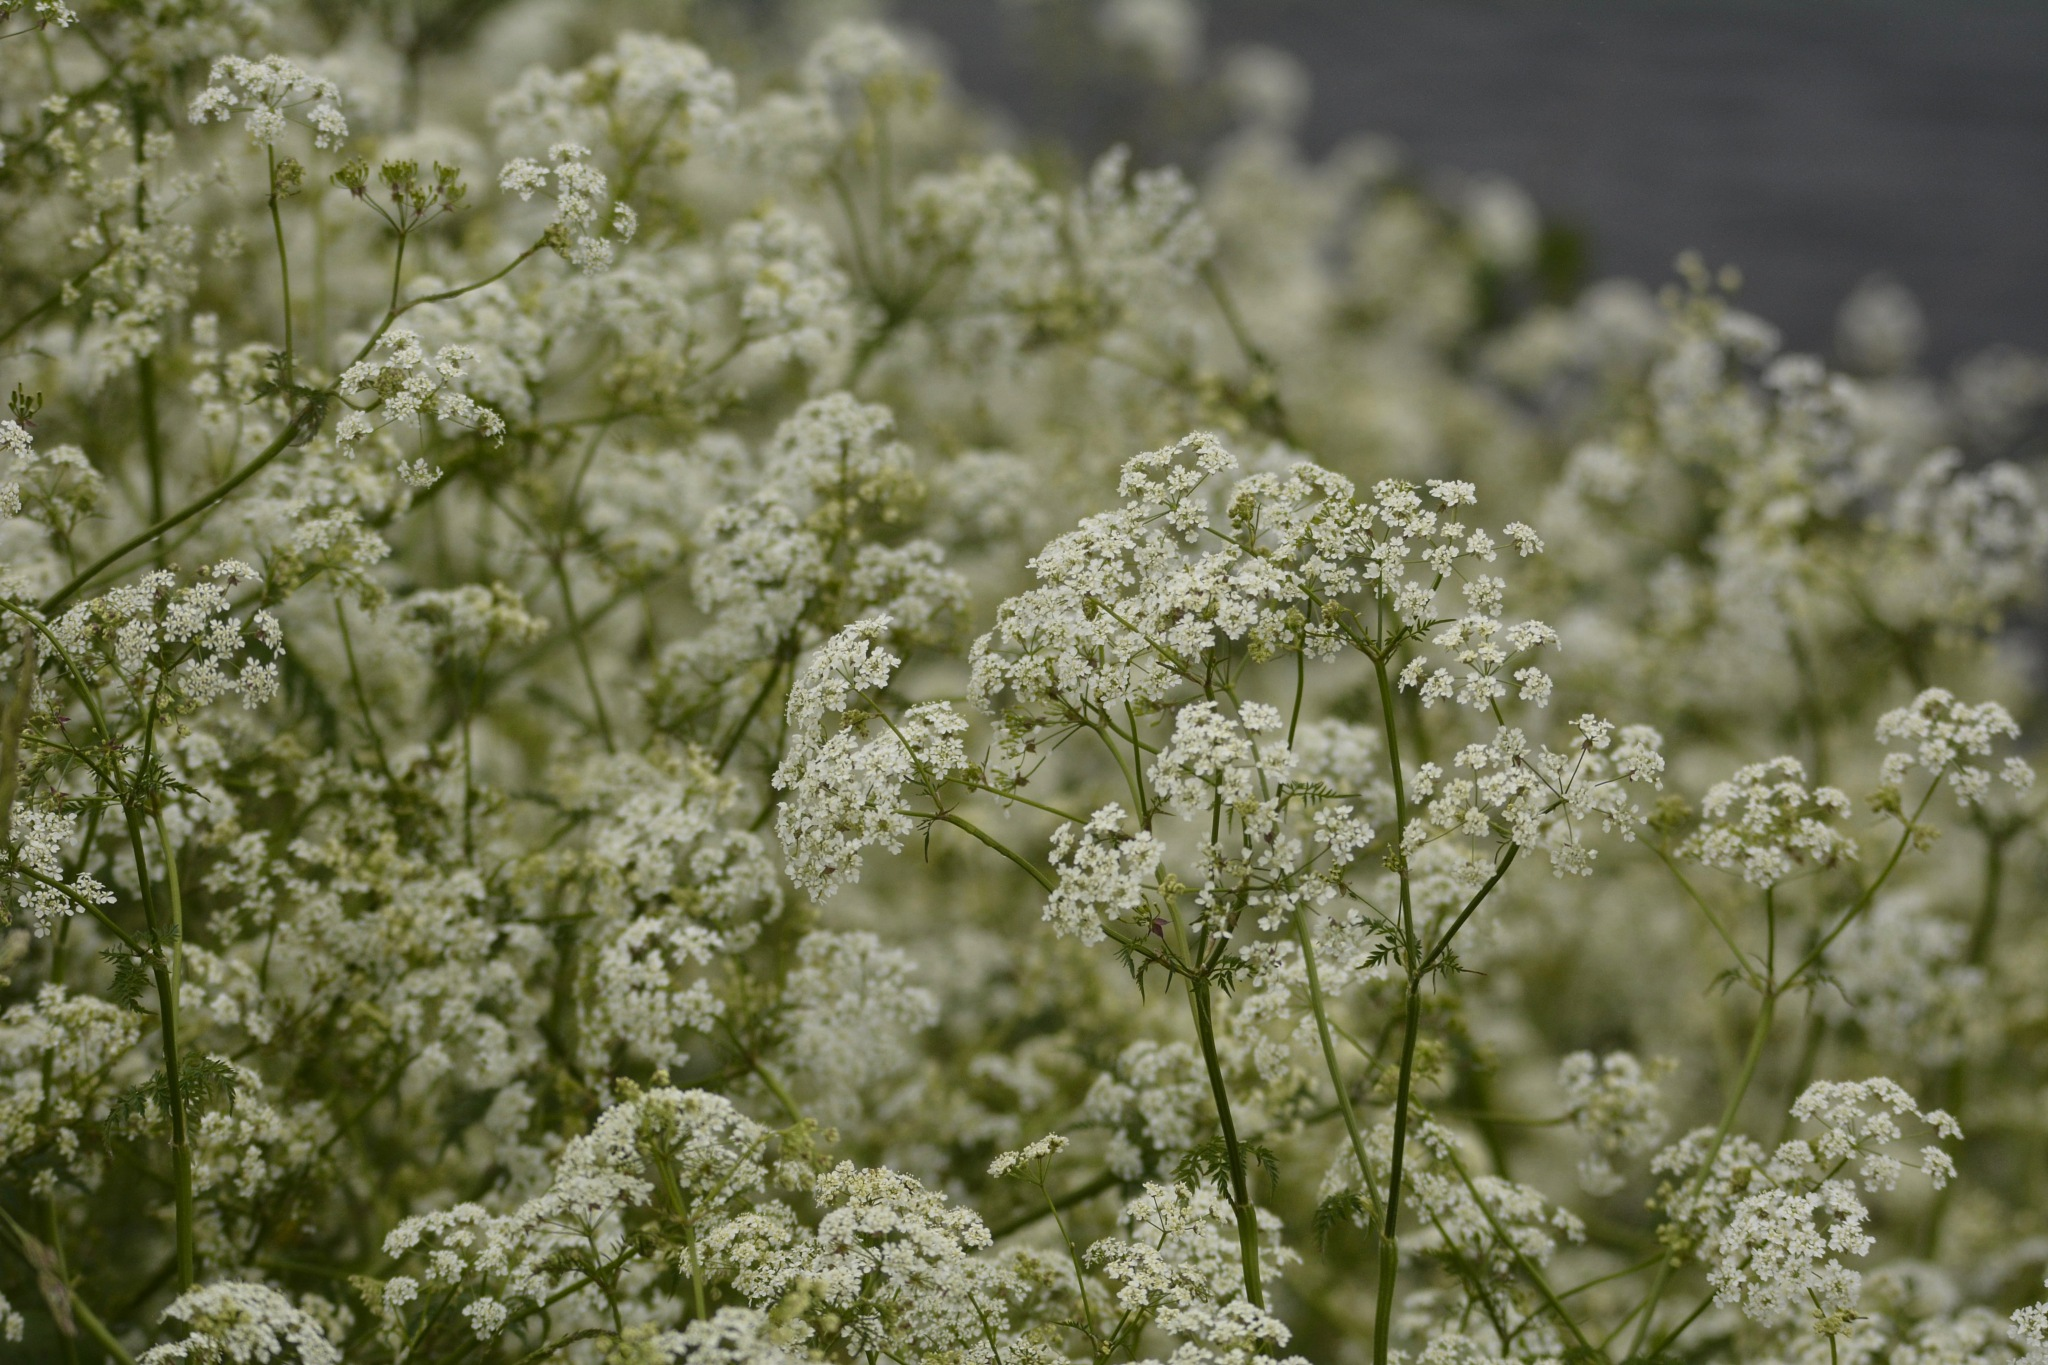 Cow Parsley 1.001 by Lars-Toralf Utnes Storstrand